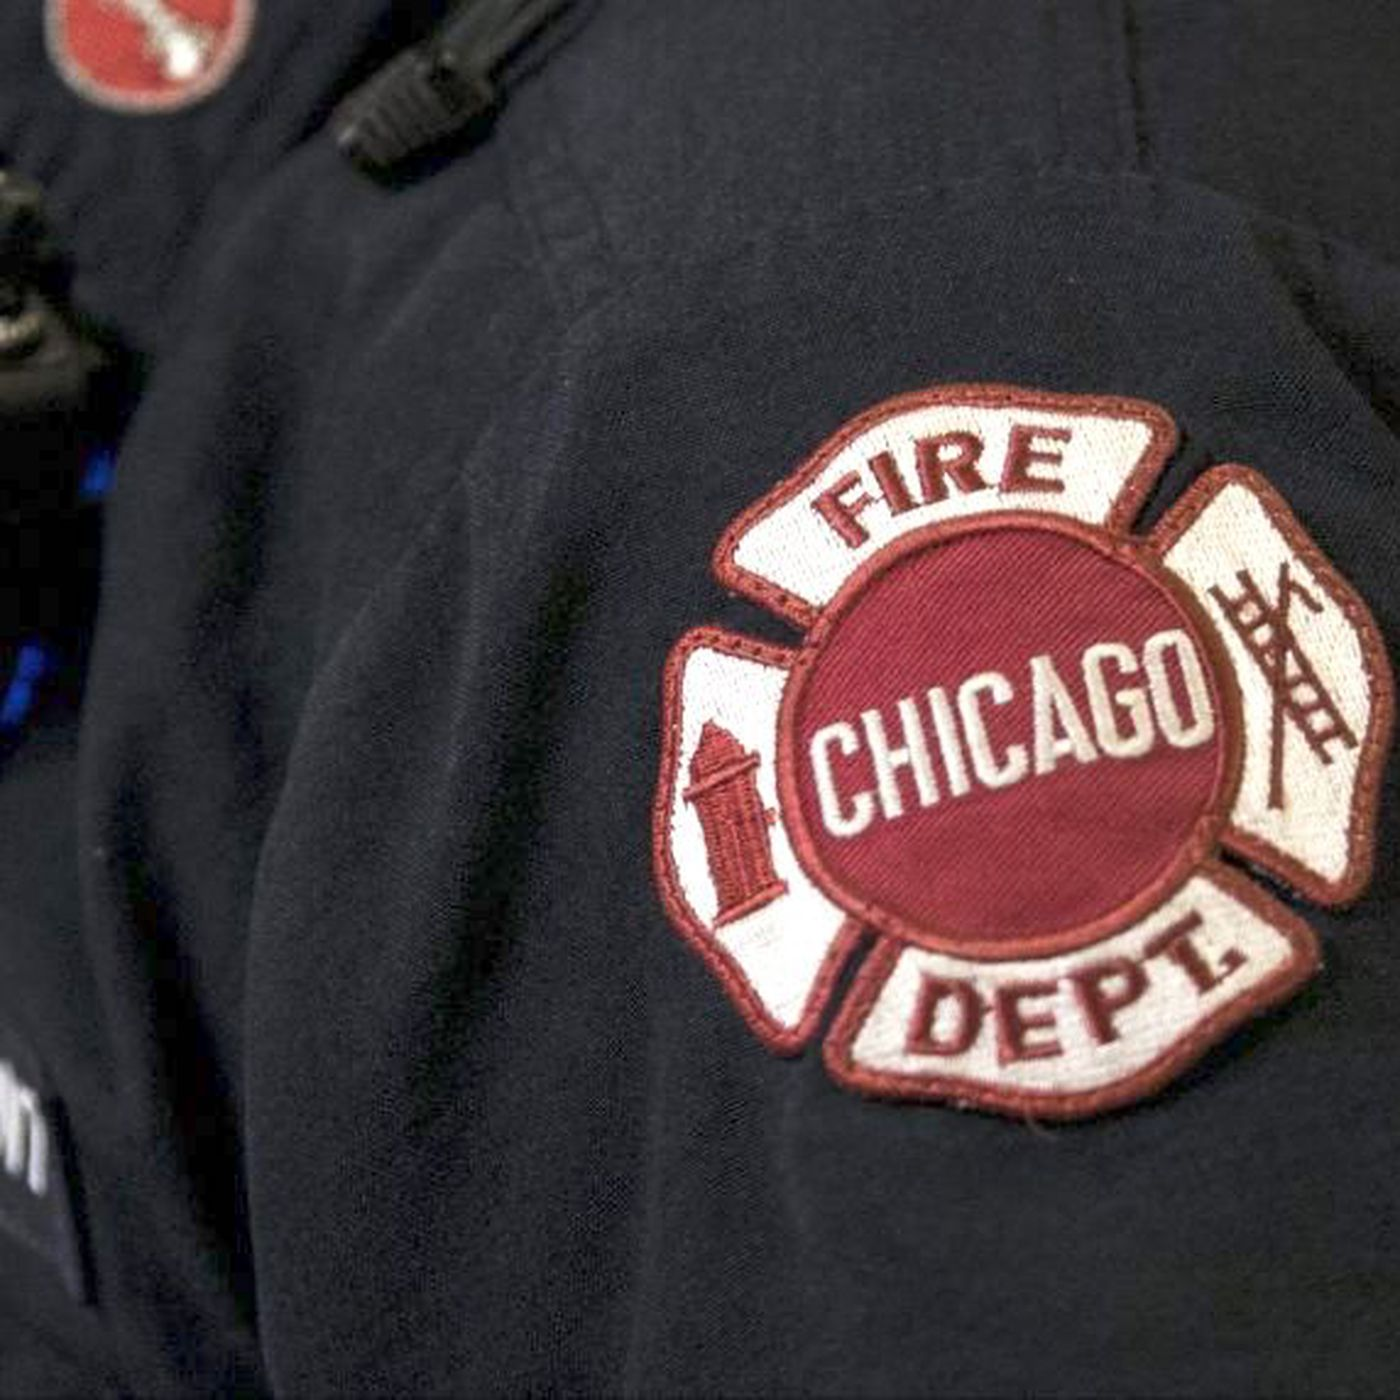 Antuane King Cfd Fire Marshal Convicted Of Federal Banking